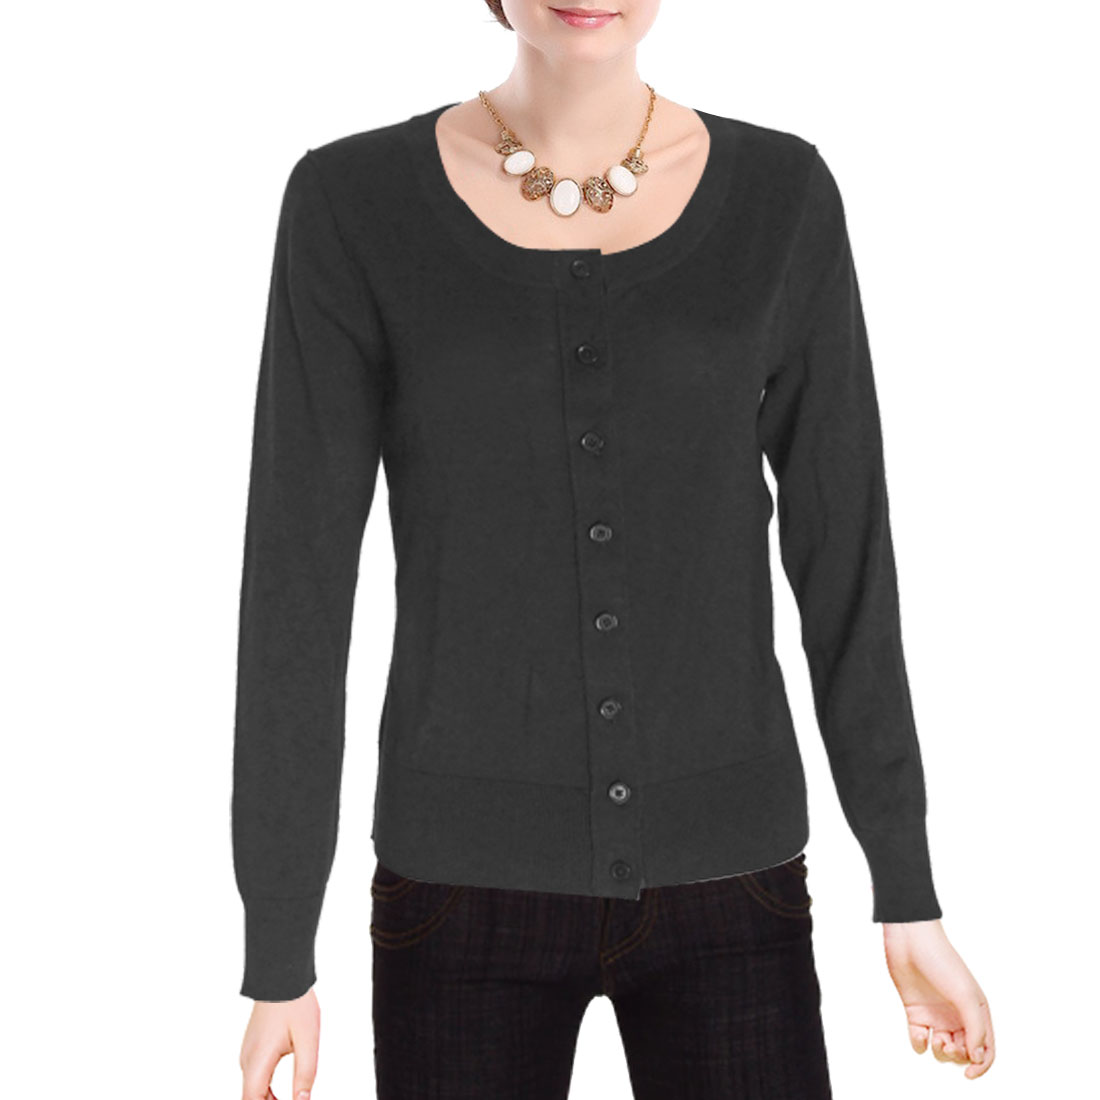 Black Long Sleeves Scoop Neckline Size S Knitted Sweater for Ladies